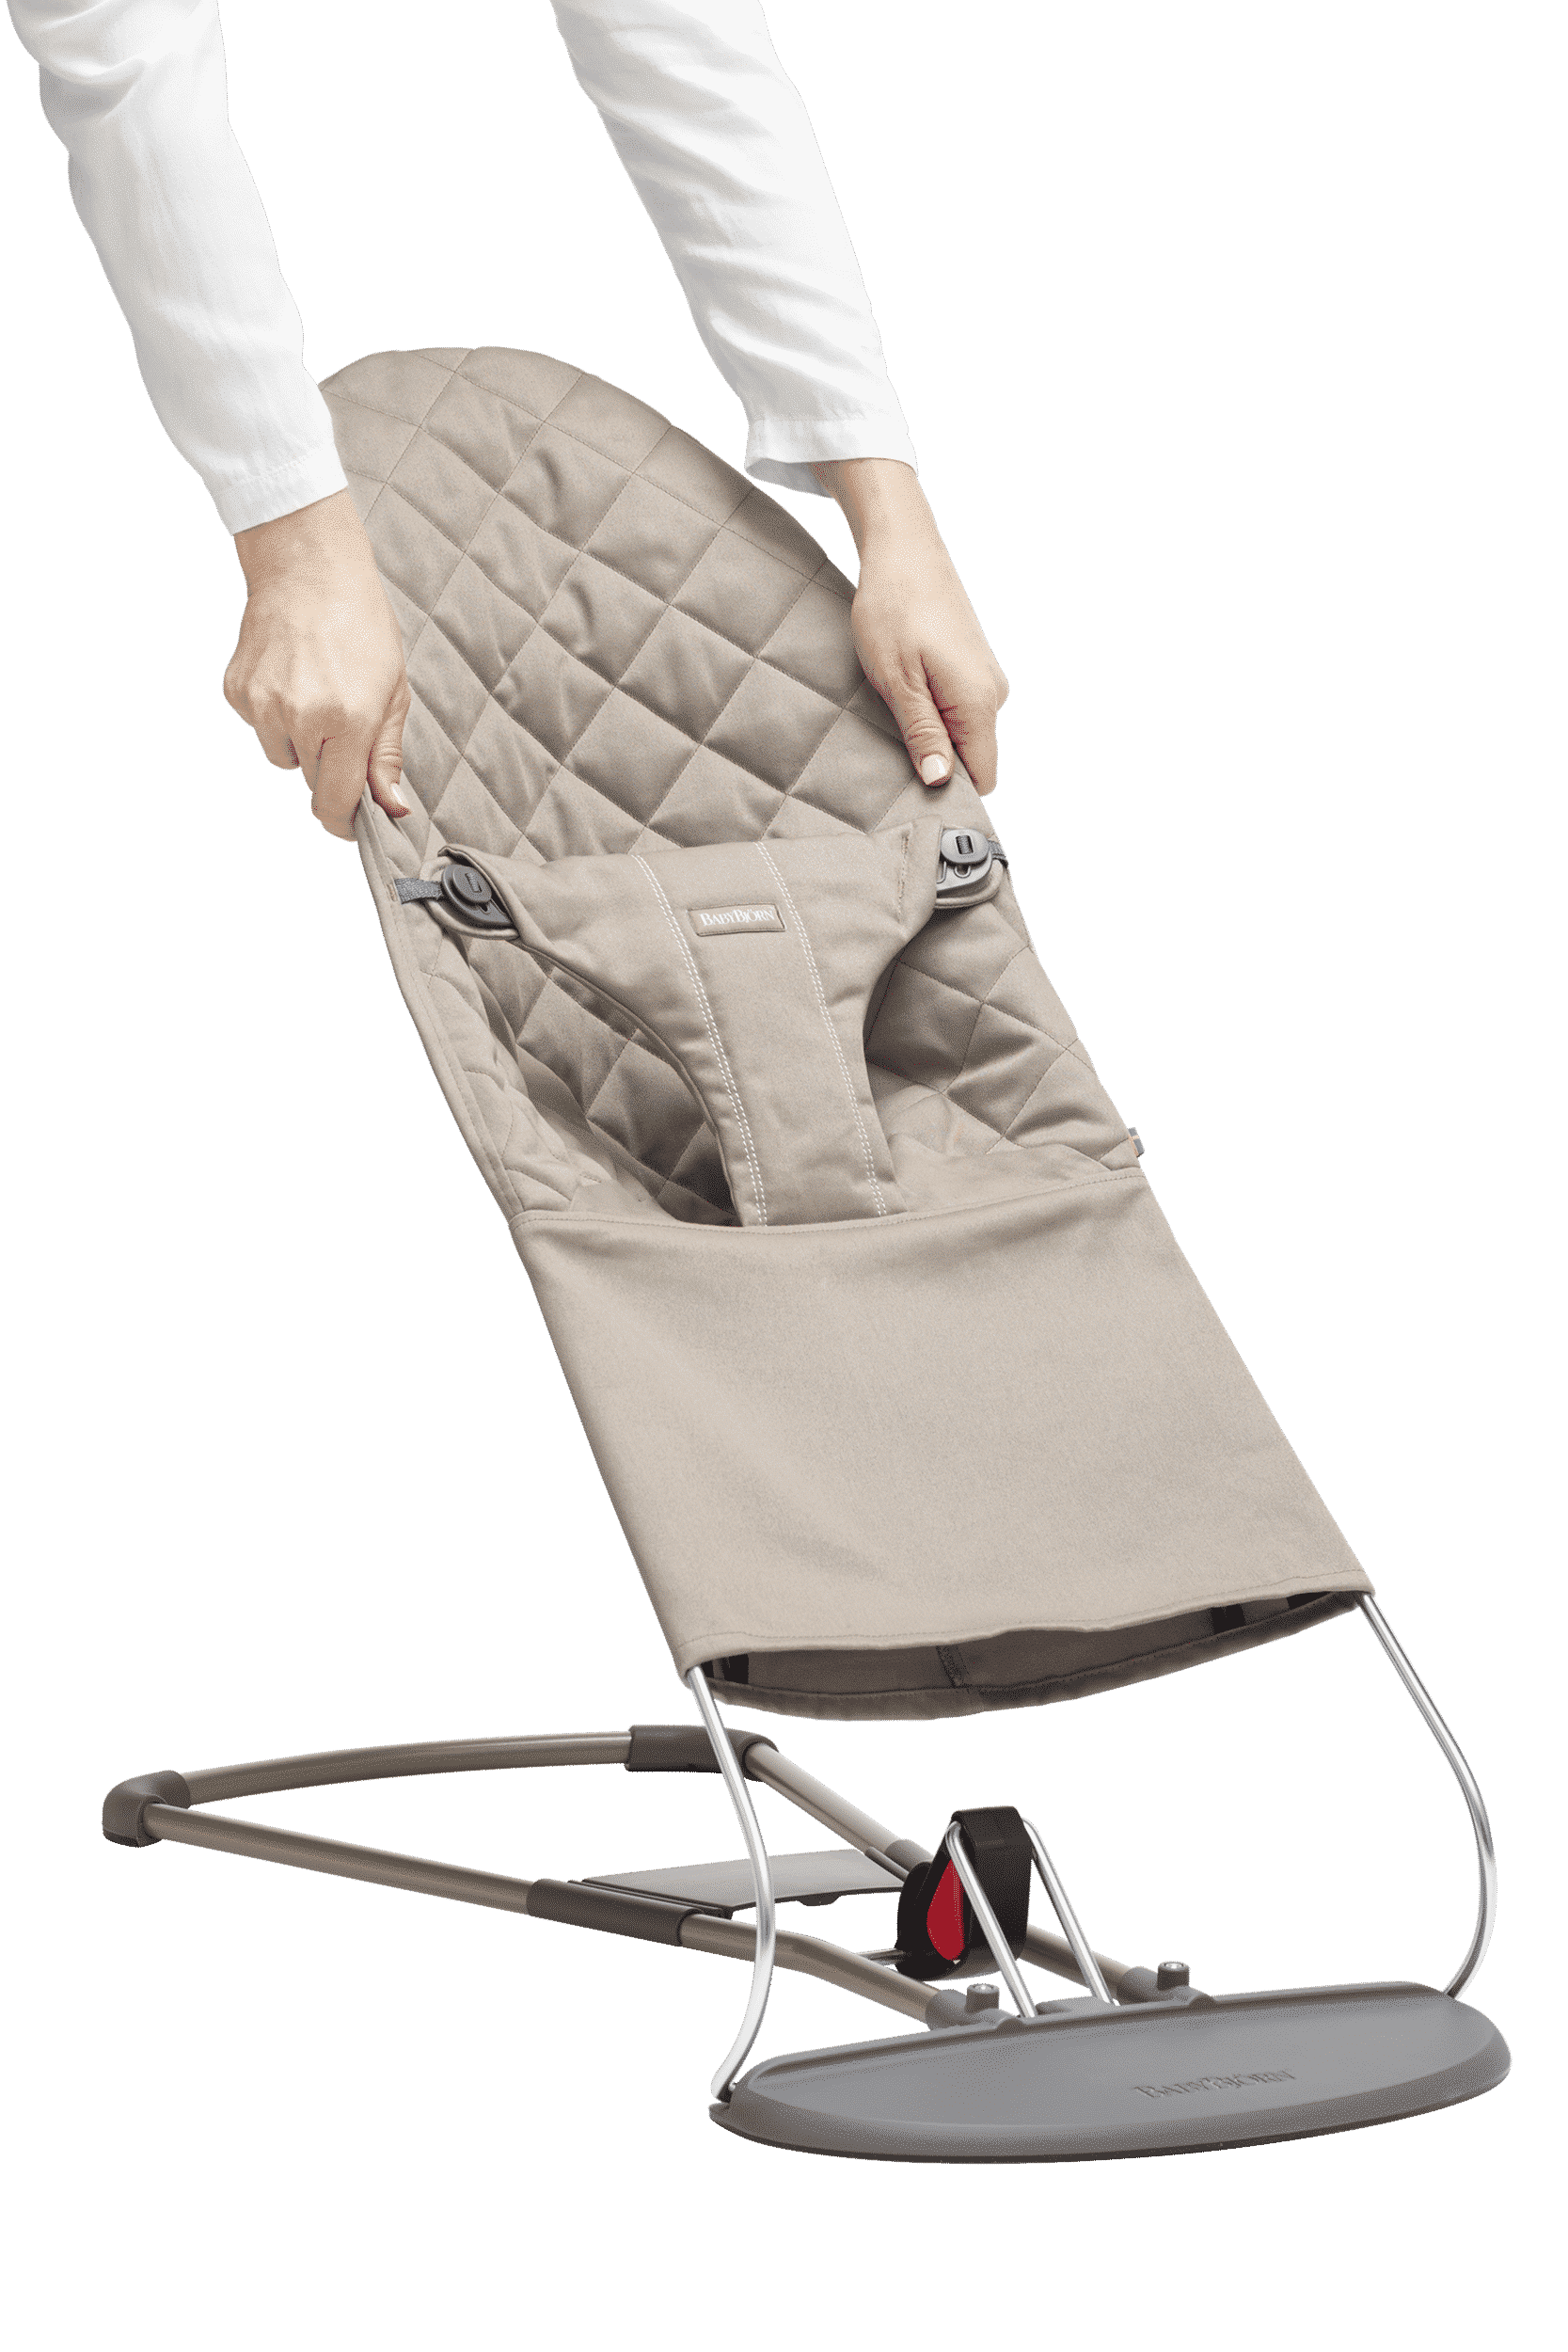 babybjorn-fabric-seat-for-bouncer-bliss-sand-grey-cotton-